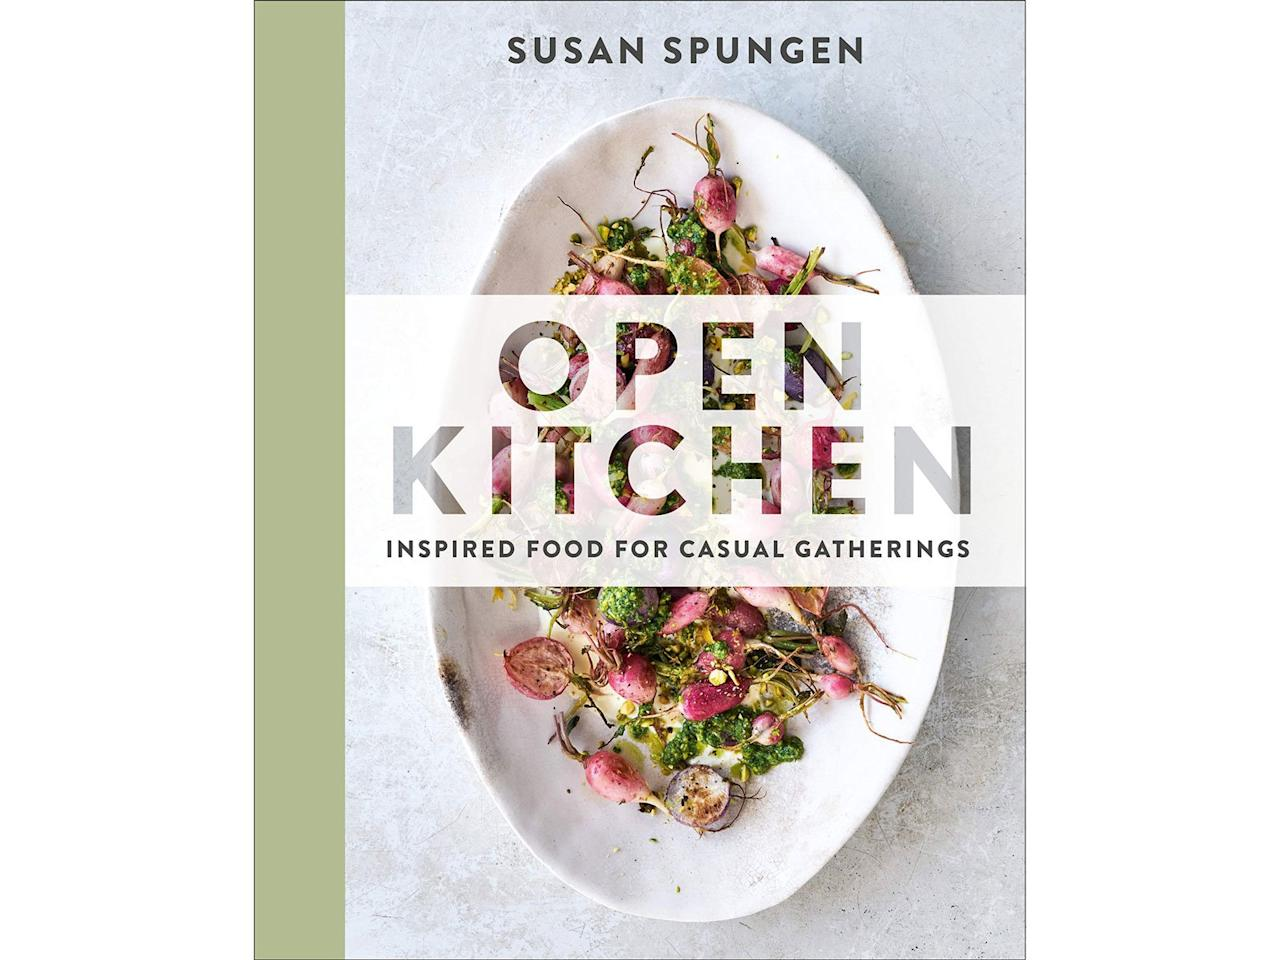 """<p>Susan Spungen, the founding food editor of <i>Martha Stewart Living</i>, shares accessible recipes for vegetable-forward, delicious meals. Her stress-free prep tips are as helpful for hosting as they are for weeknight dinners.</p> <p><strong><em>Open Kitchen: Inspired Food for Casual Gatherings</em> by Susan Spungen (2020), $35 at <a href=""""https://www.amazon.com/Open-Kitchen-Inspired-Casual-Gatherings/dp/0525536671/ref=as_li_ss_tl?ie=UTF8&linkCode=ll1&tag=fwvegetariancookbooksmsoll0120-20&linkId=c466f74bebb33e0480e9beb9fc9004a0&language=en_US"""" target=""""_blank"""">amazon.com</a></strong></p>"""